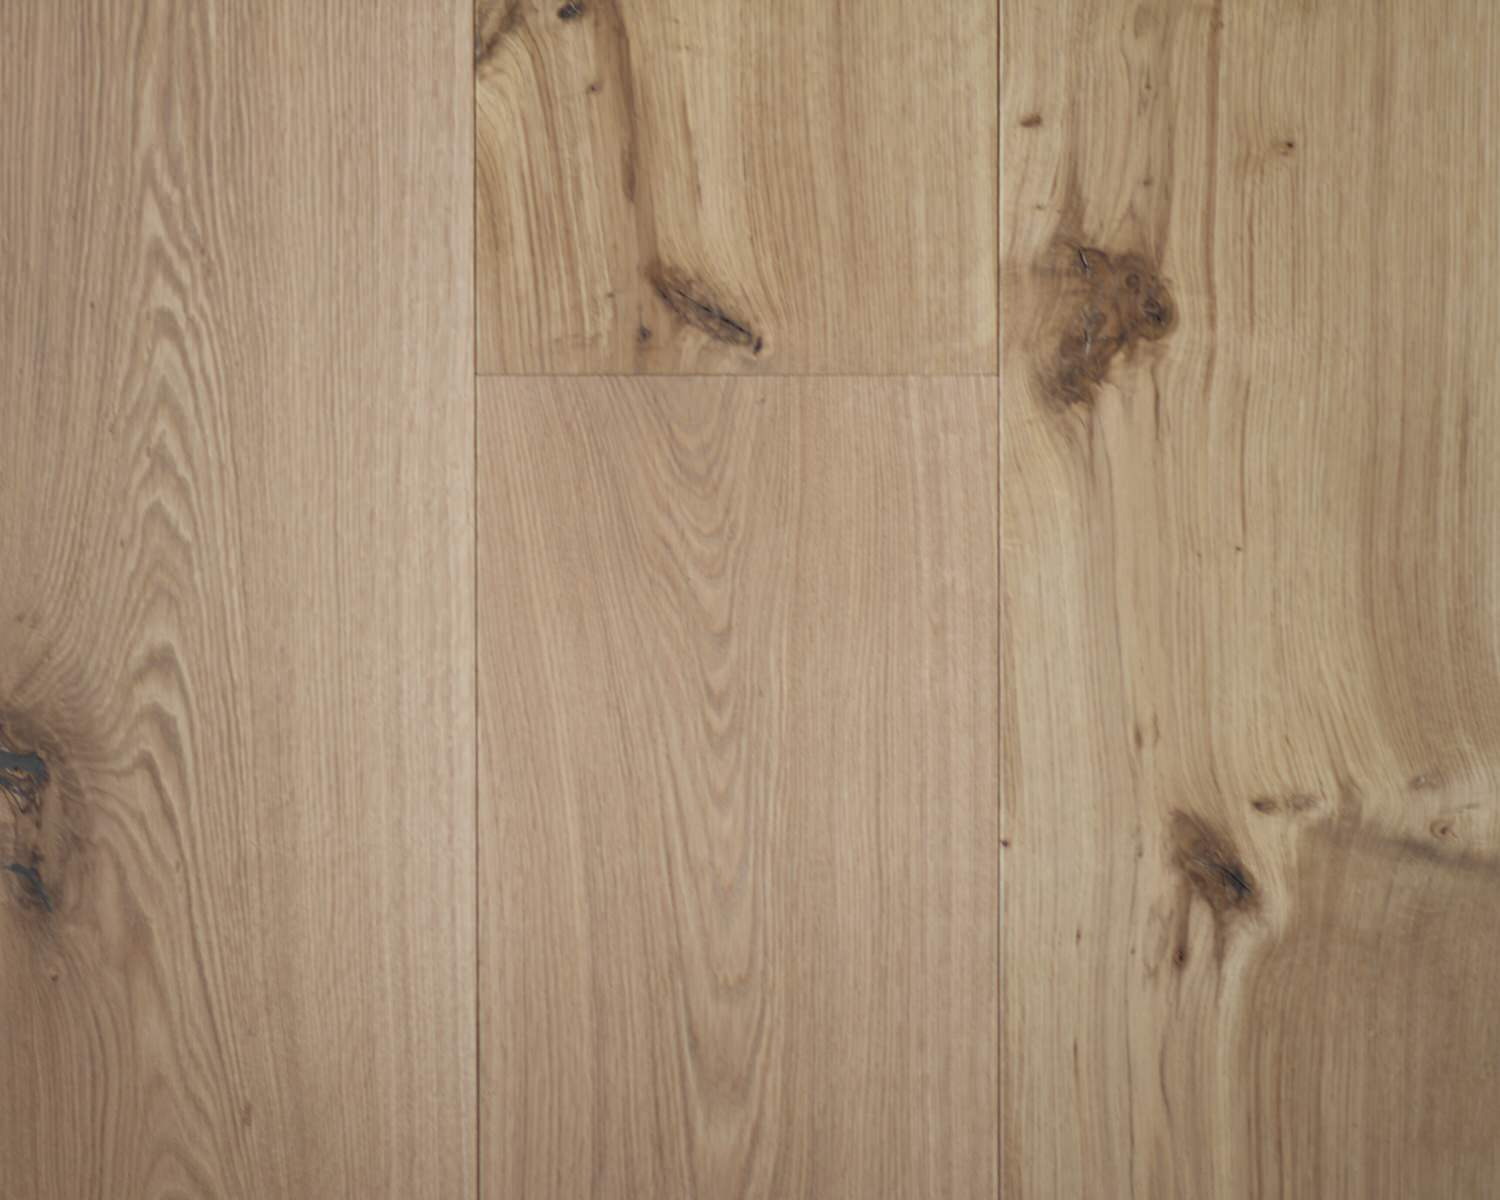 wide plank floor sample